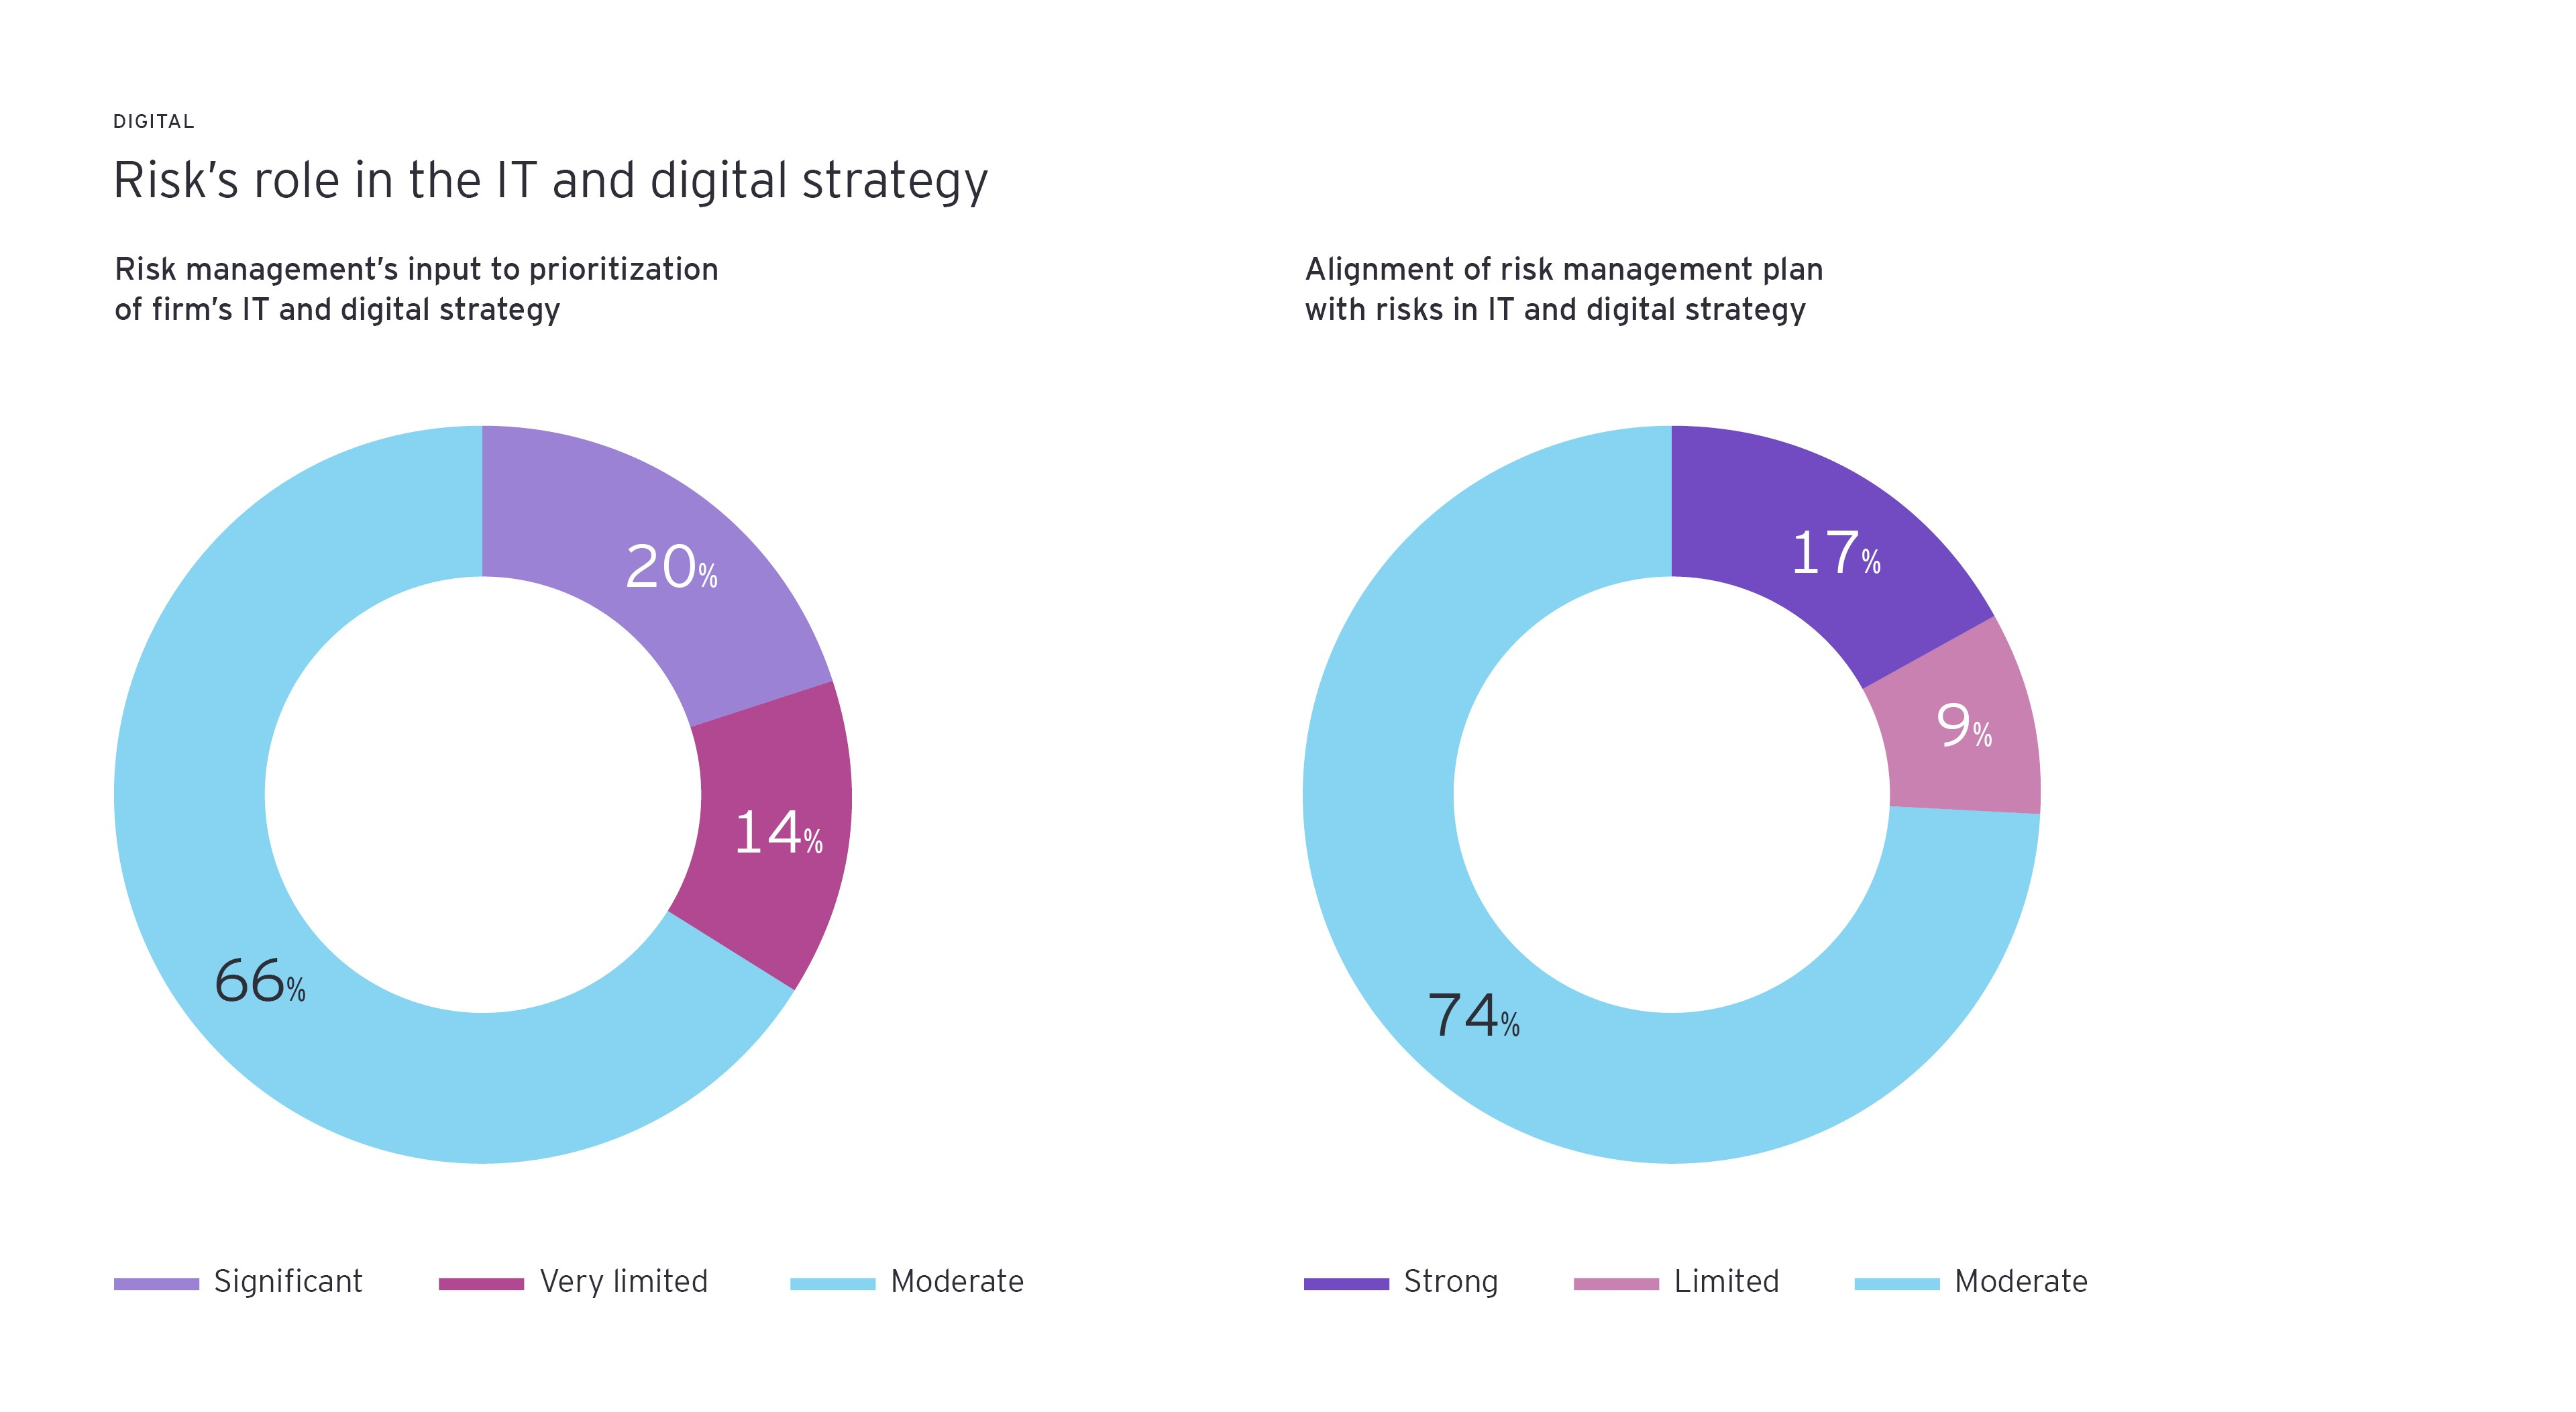 Risk's role in the IT and digital strategy